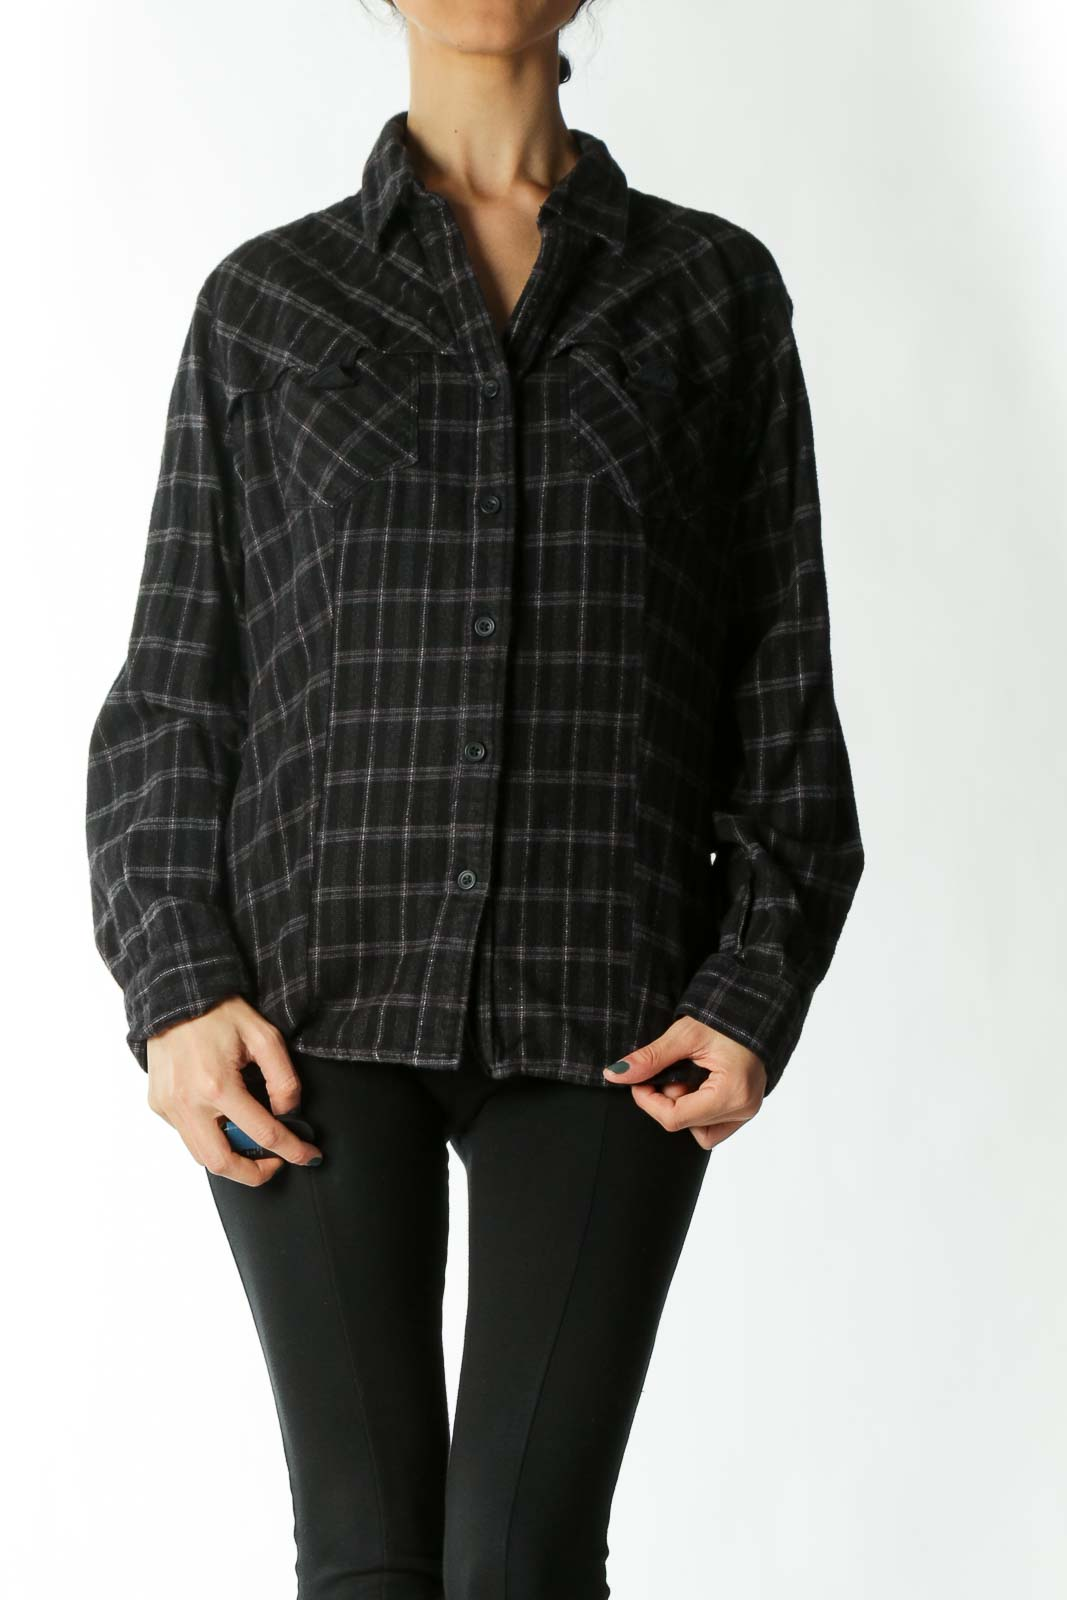 Black and Grey Plaid Heavy-Wear Fitted Button-Down